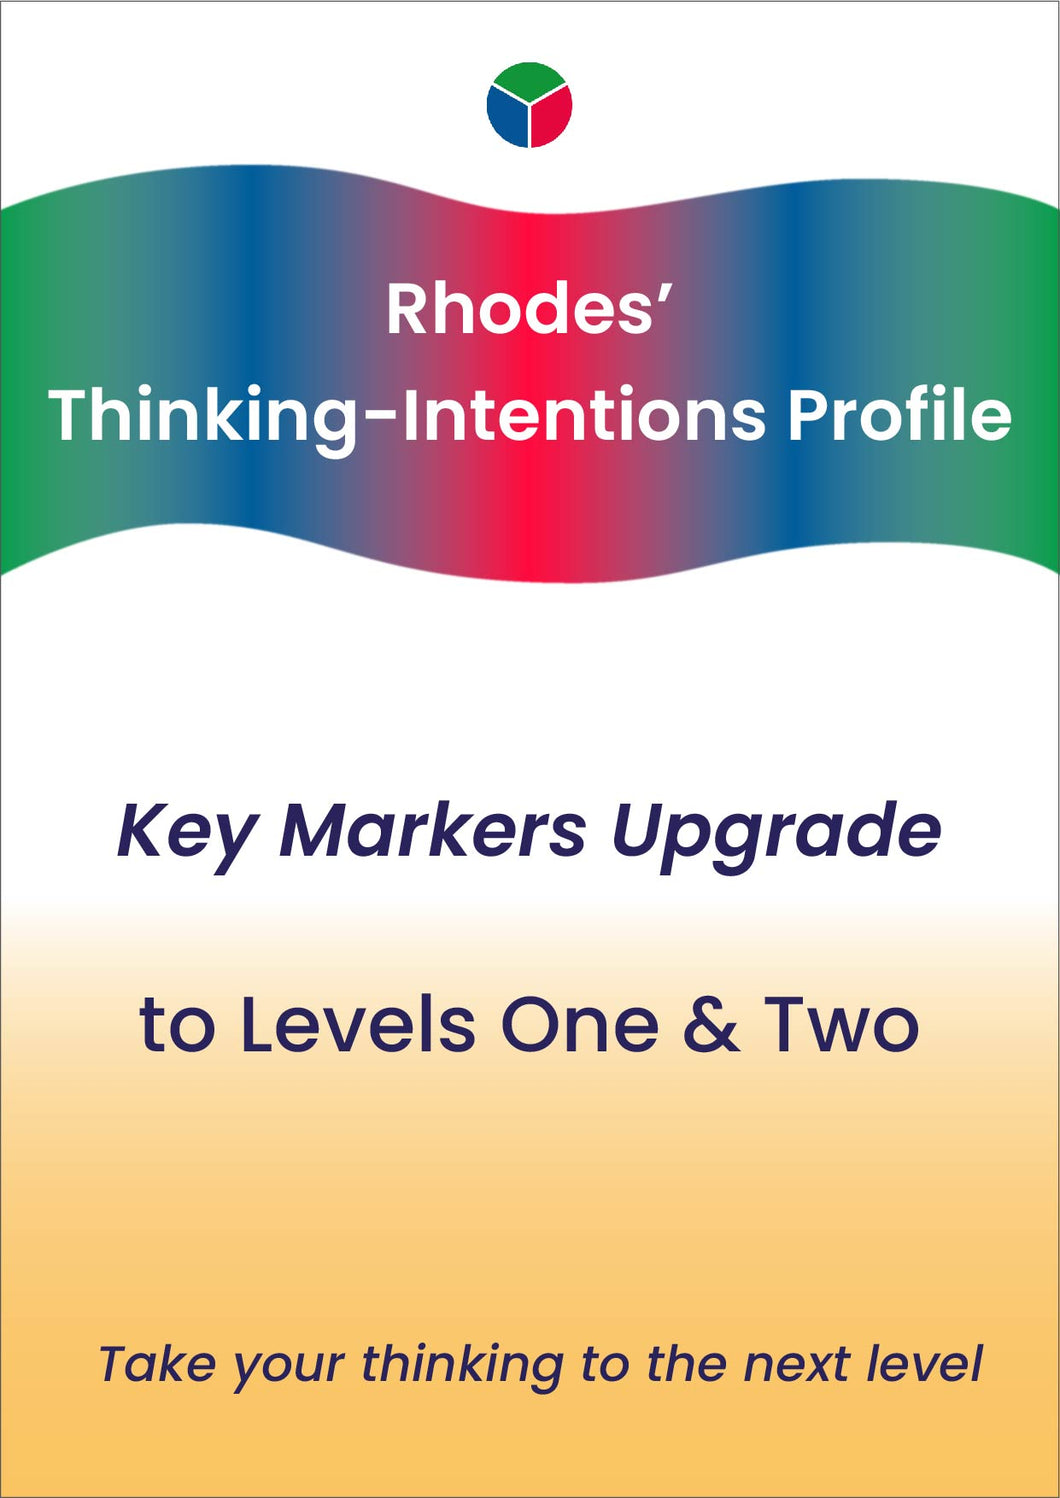 Key Markers Upgrade to Levels 1 & 2